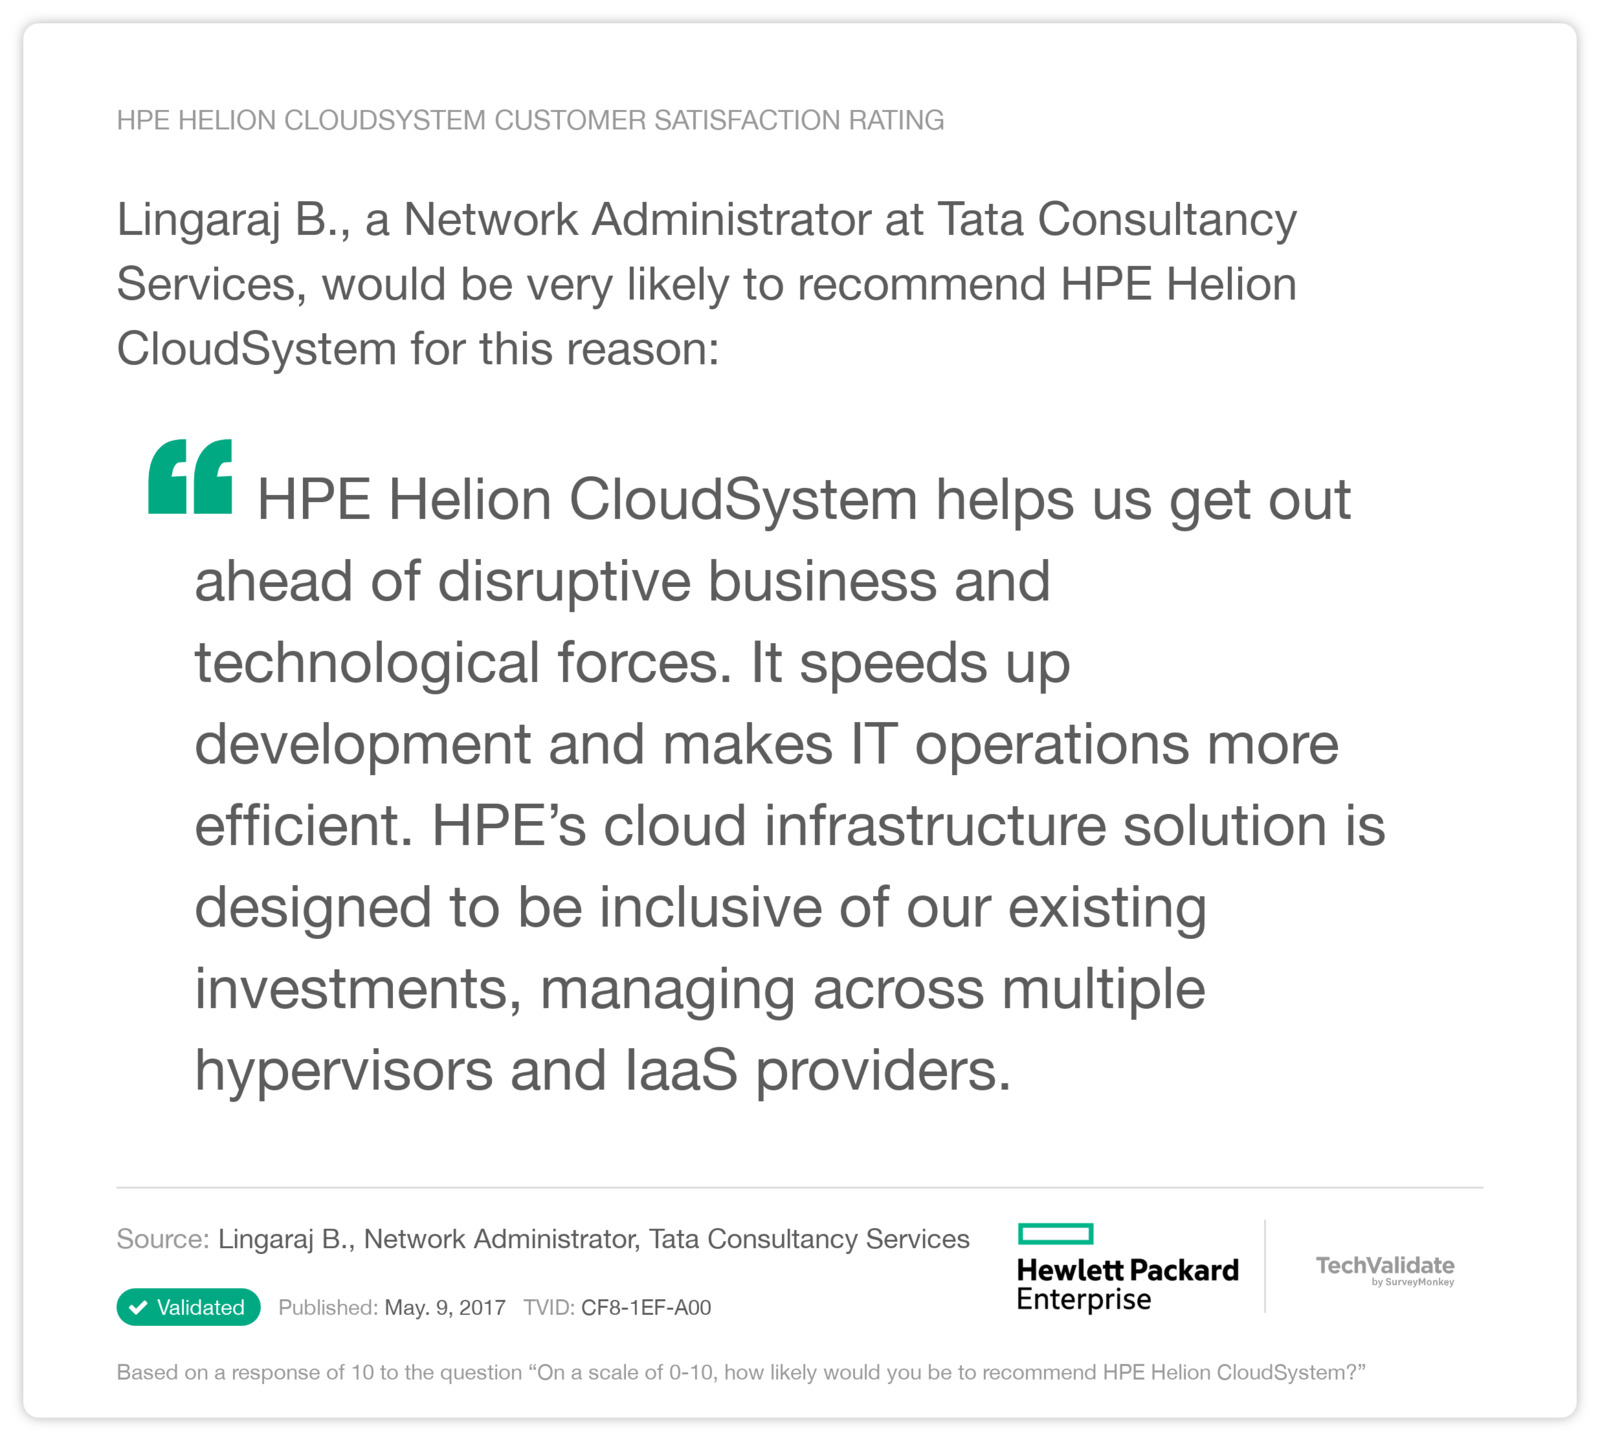 HPE Helion CloudSystem Customer Satisfaction Rating